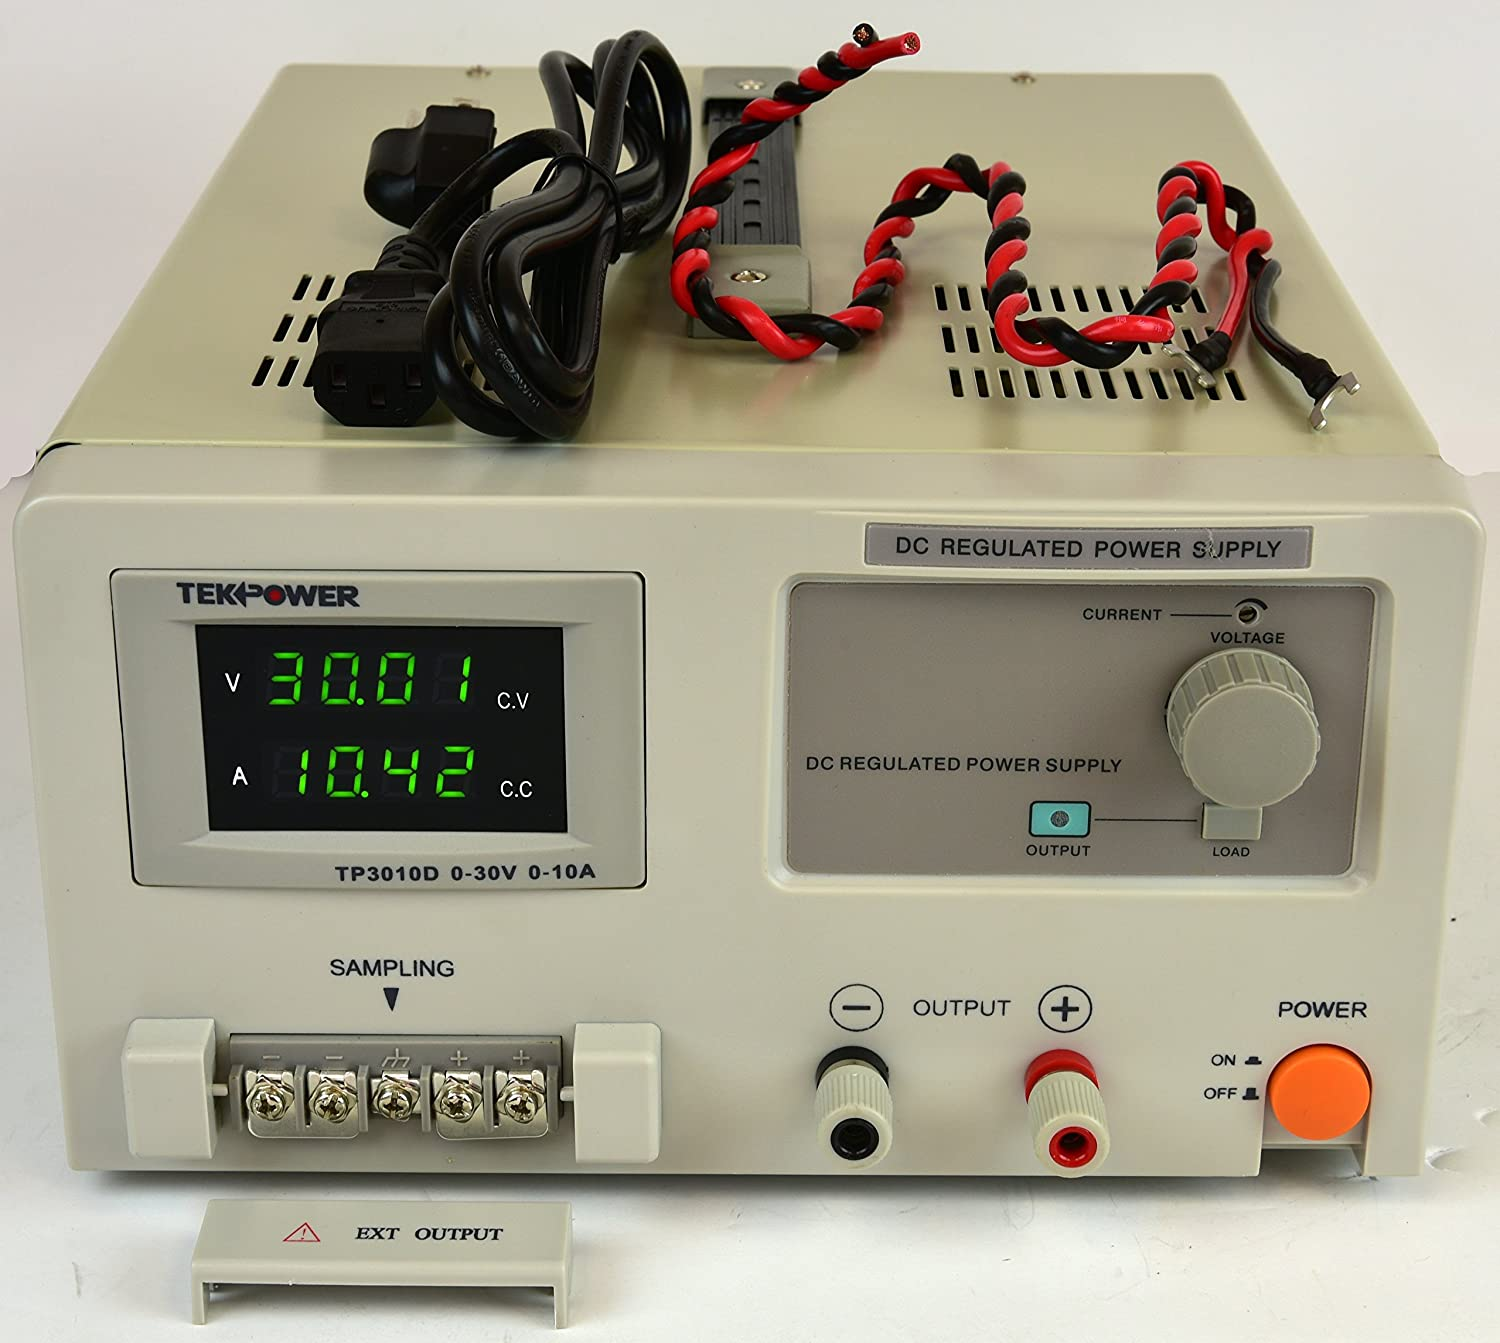 TekPower TP3010D DC Adjustable Linear Power Supply Better than TP3010E HY3010E 30Volt//10A 30V at 10A Lab Grade Transformer Type Clean Power Source